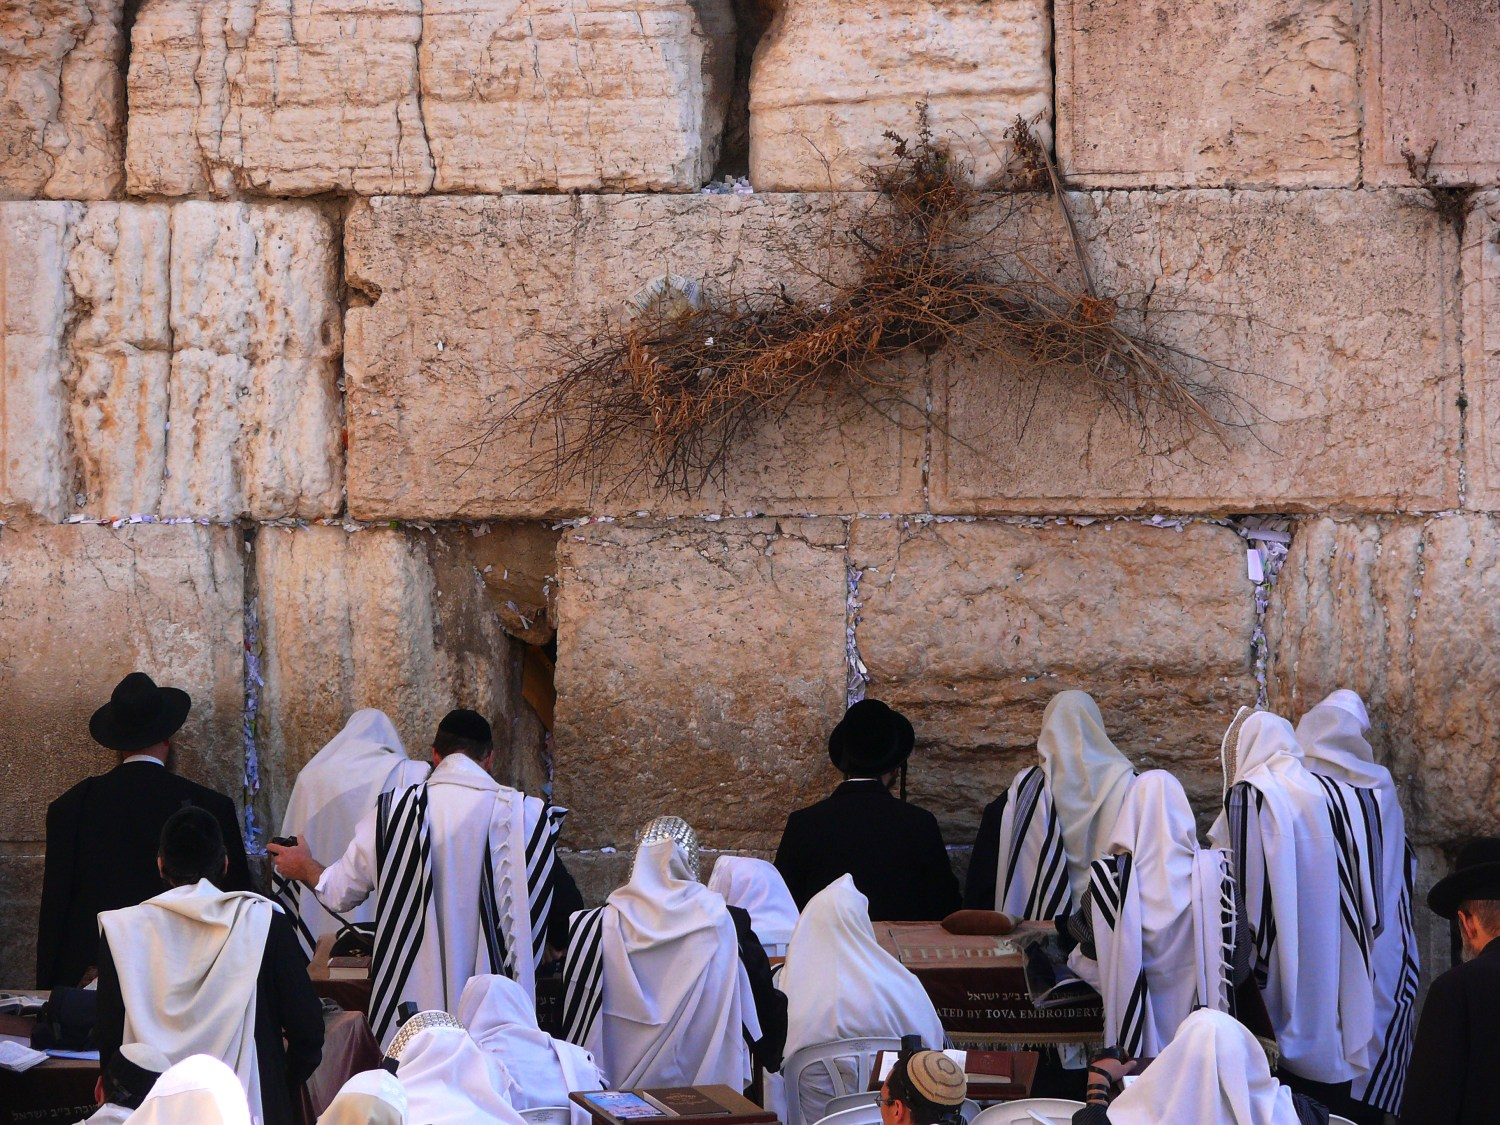 Photo: MathKnight and Zachi Evenor. Religious Jews pray in the Western Wall (Wailing Wall, HaKotel HaMaaravi), Jerusalem. יהודים מתפללים בכותל המערבי בירושלים